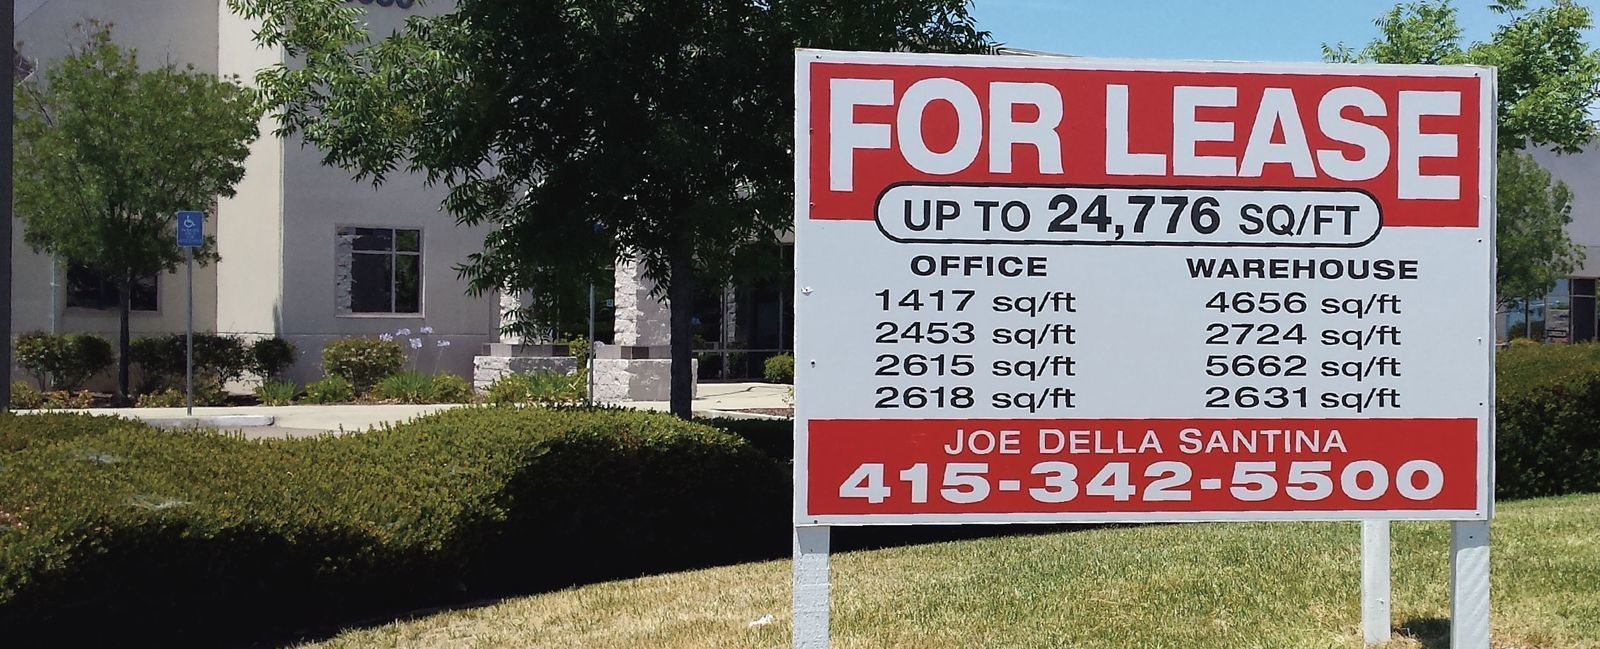 Put Your Commercial Real Estate Signs to Work